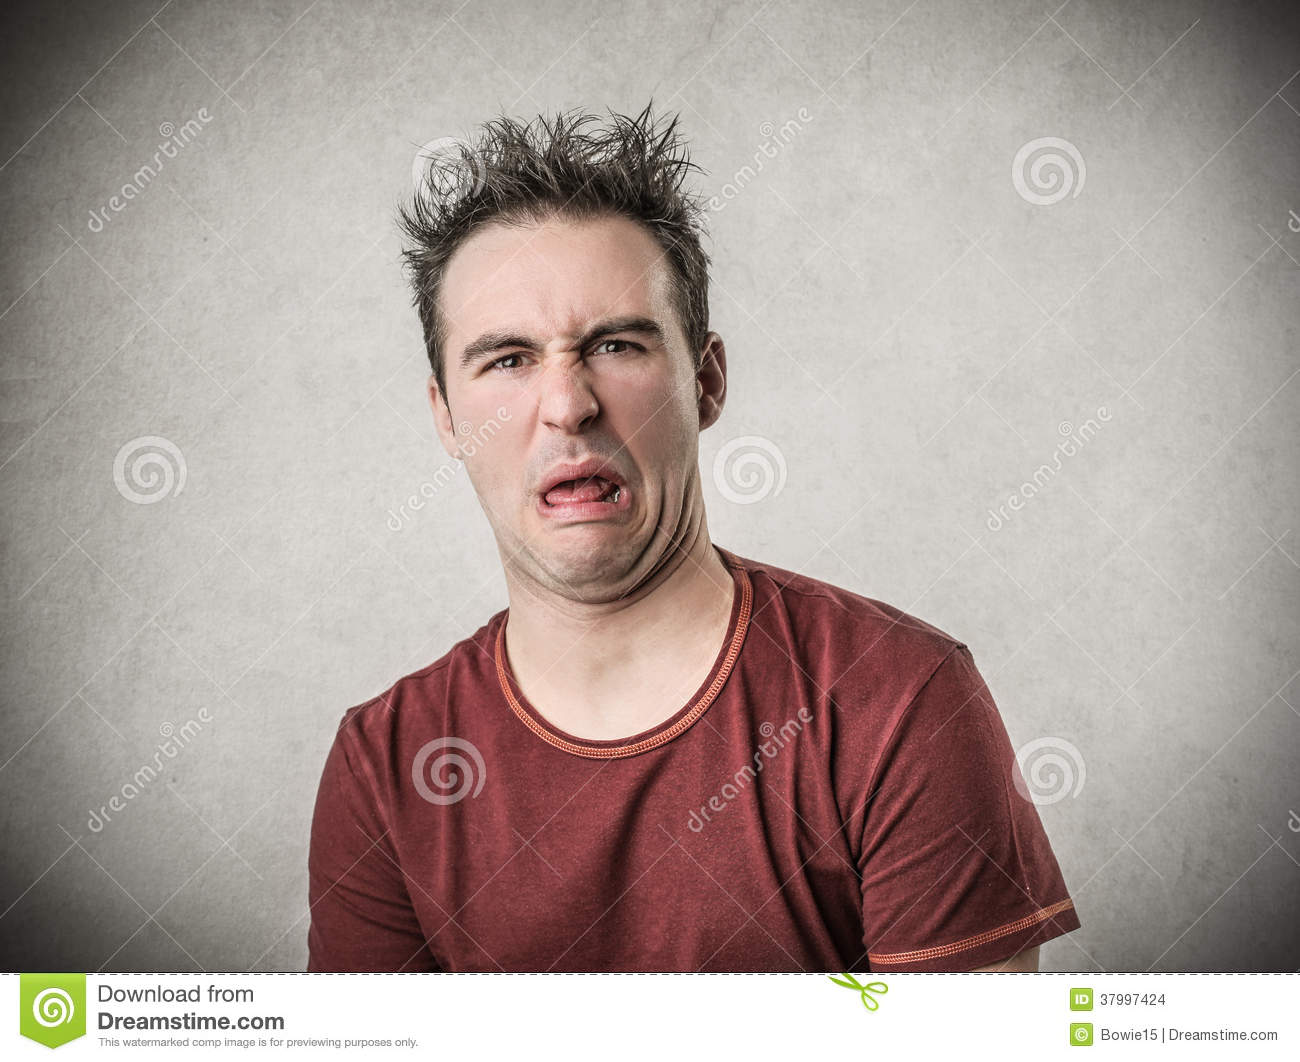 Man With A Disgusted Expression Stock Photo - Image: 37997424